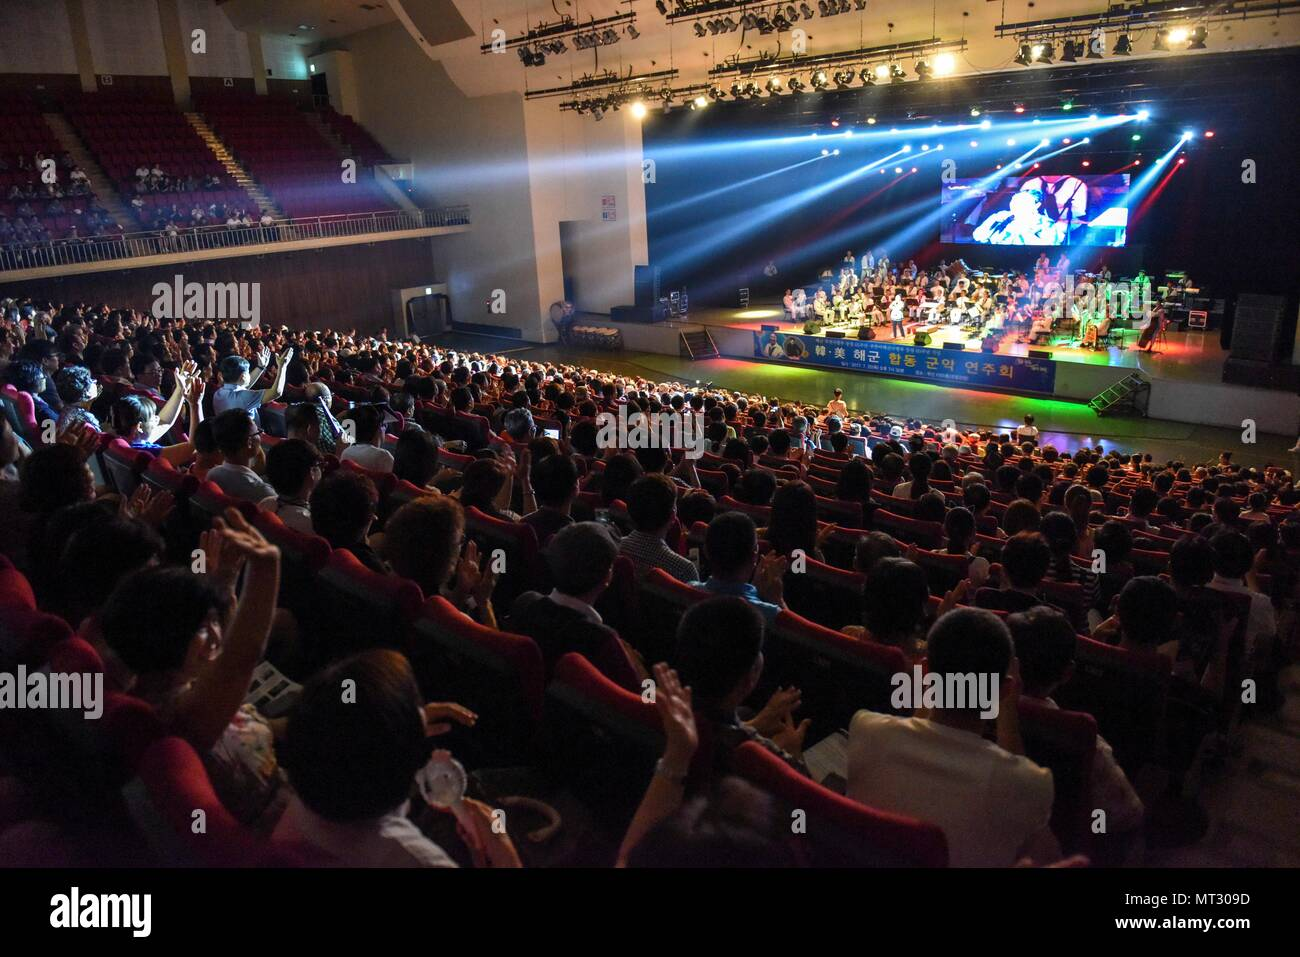 170720-N-WT427-583 BUSAN, Republic of Korea (July 20, 2017) Sailors from Combined Republic of Korea (ROK)-U.S. Navy Band performs during a combined anniversary celebration. The performance was held to celebrate both Commander, Naval Forces Korea's (CNFK) 60th anniversary and Republic of Korea (ROK) Fleet's 65th anniversary. CNFK is the U.S. Navy's representative in the ROK, providing leadership and expertise in naval matters to improve institutional and operational effectiveness between the two navies and to strengthen collective security efforts in Korea and the region. (U.S. Navy photo by Ma Stock Photo